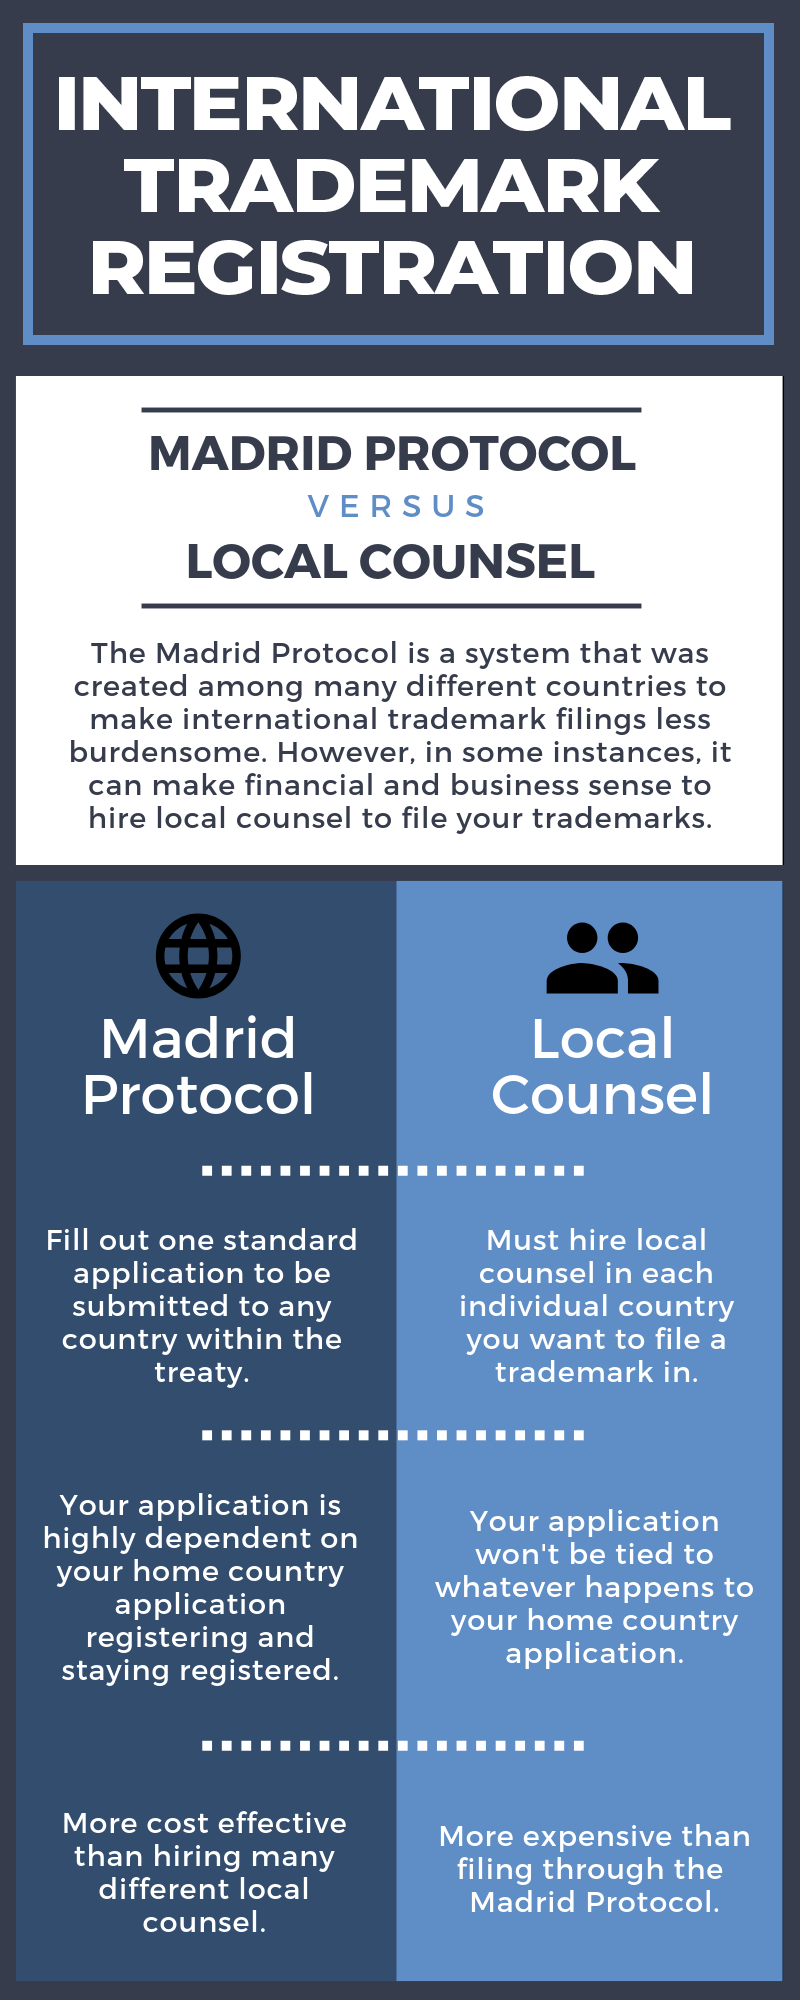 Contrasts between internationally registering with the Madrid Protocol and using local counsel.